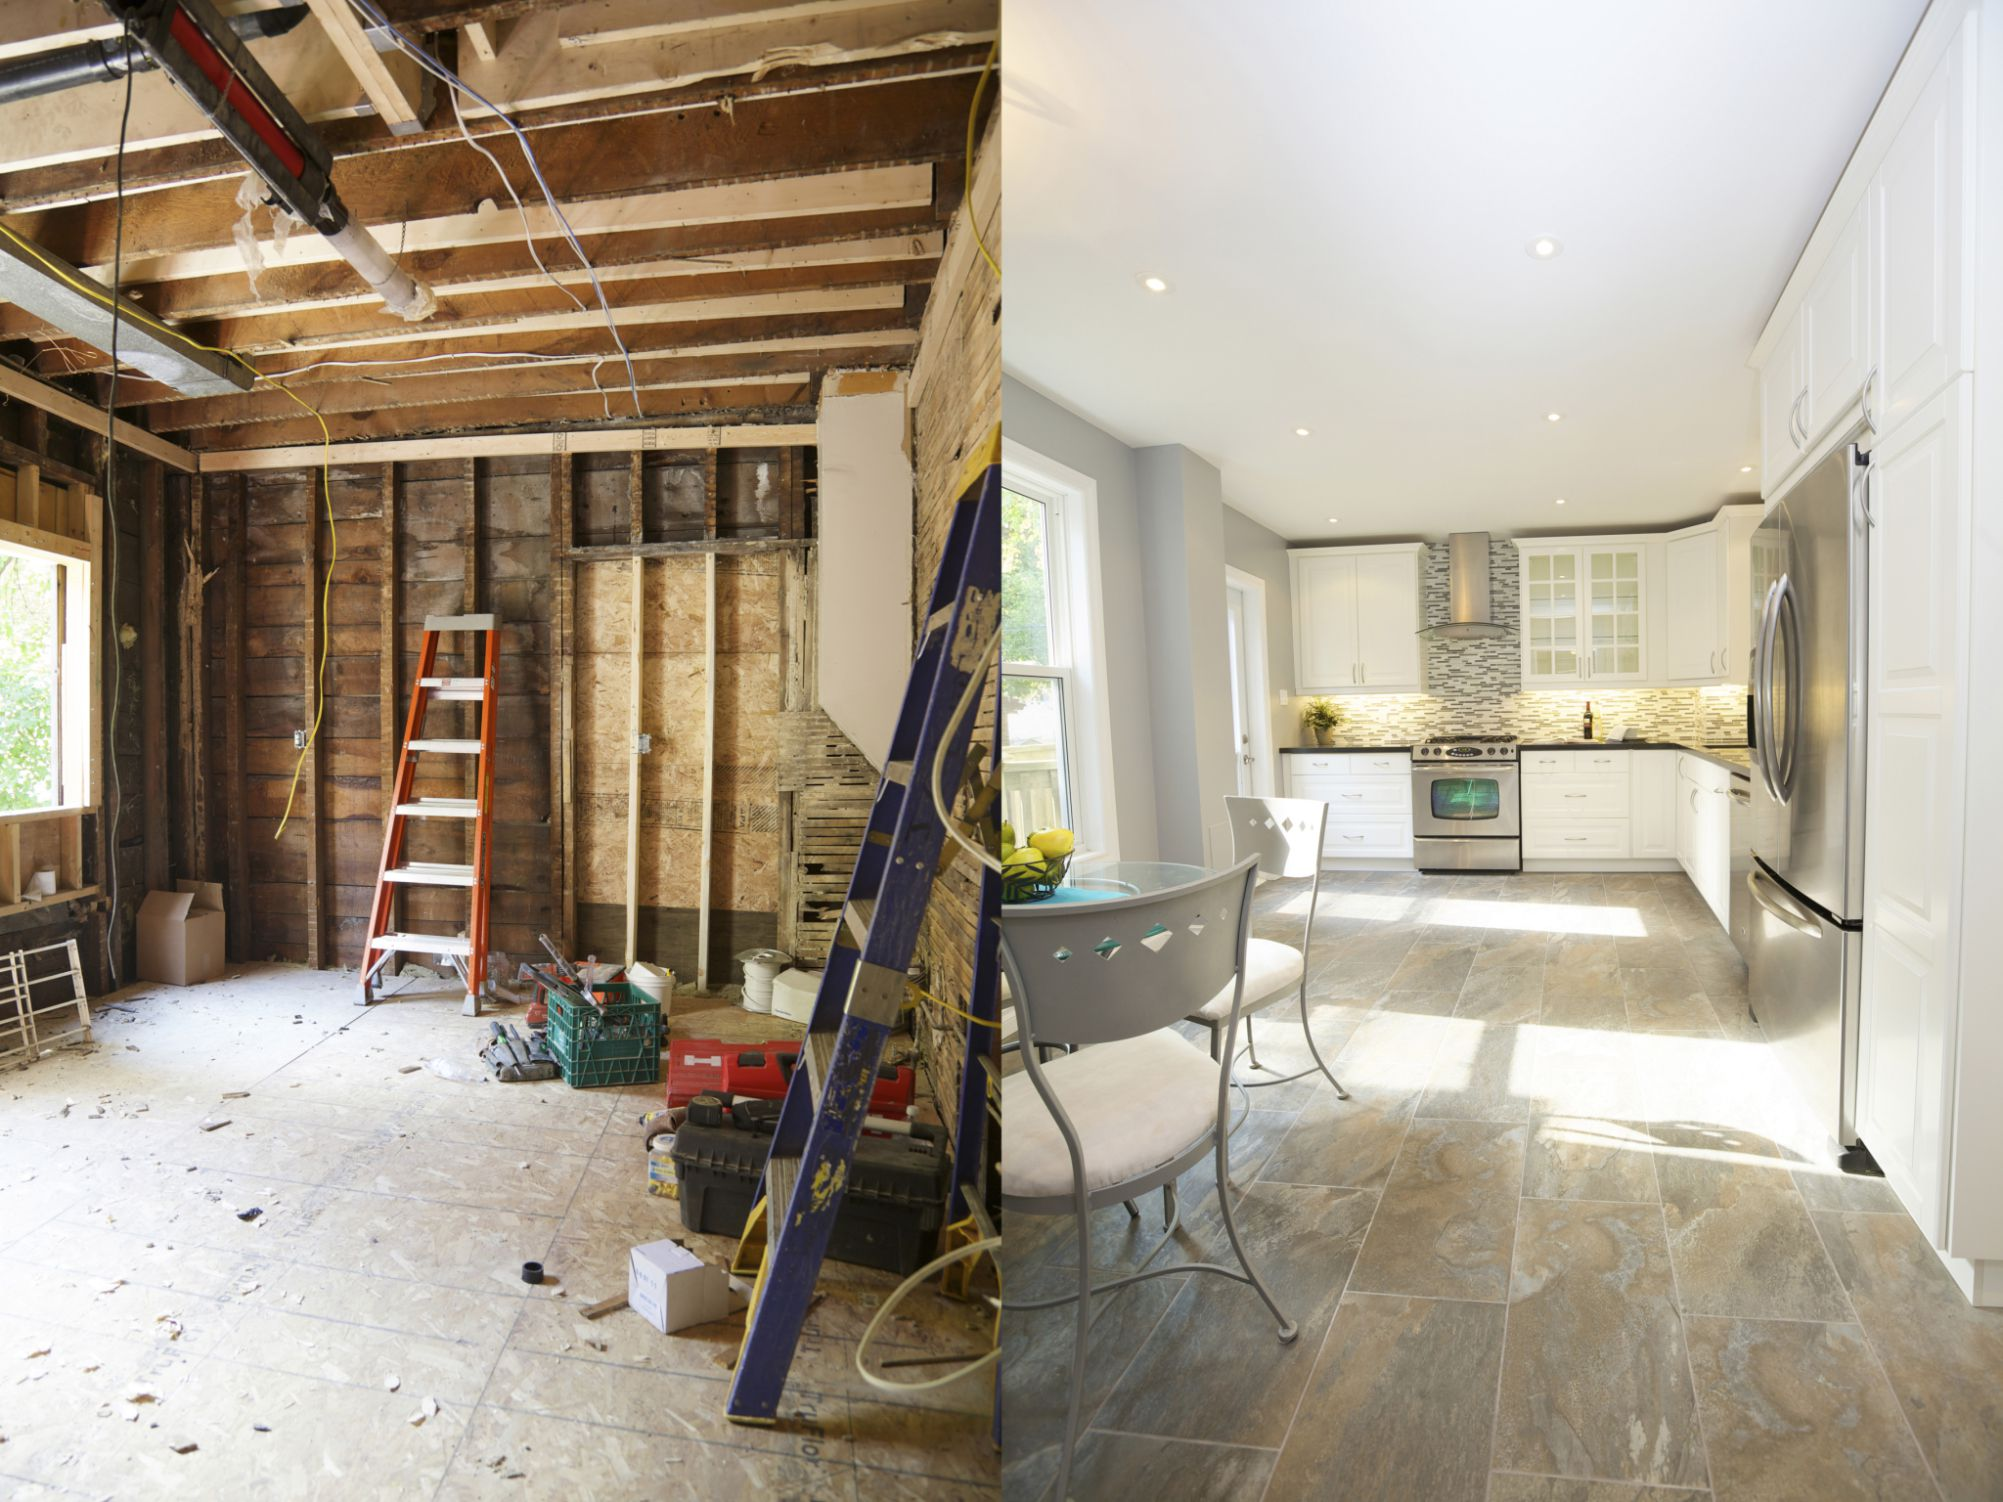 Coping Well With Your Remodeling Project